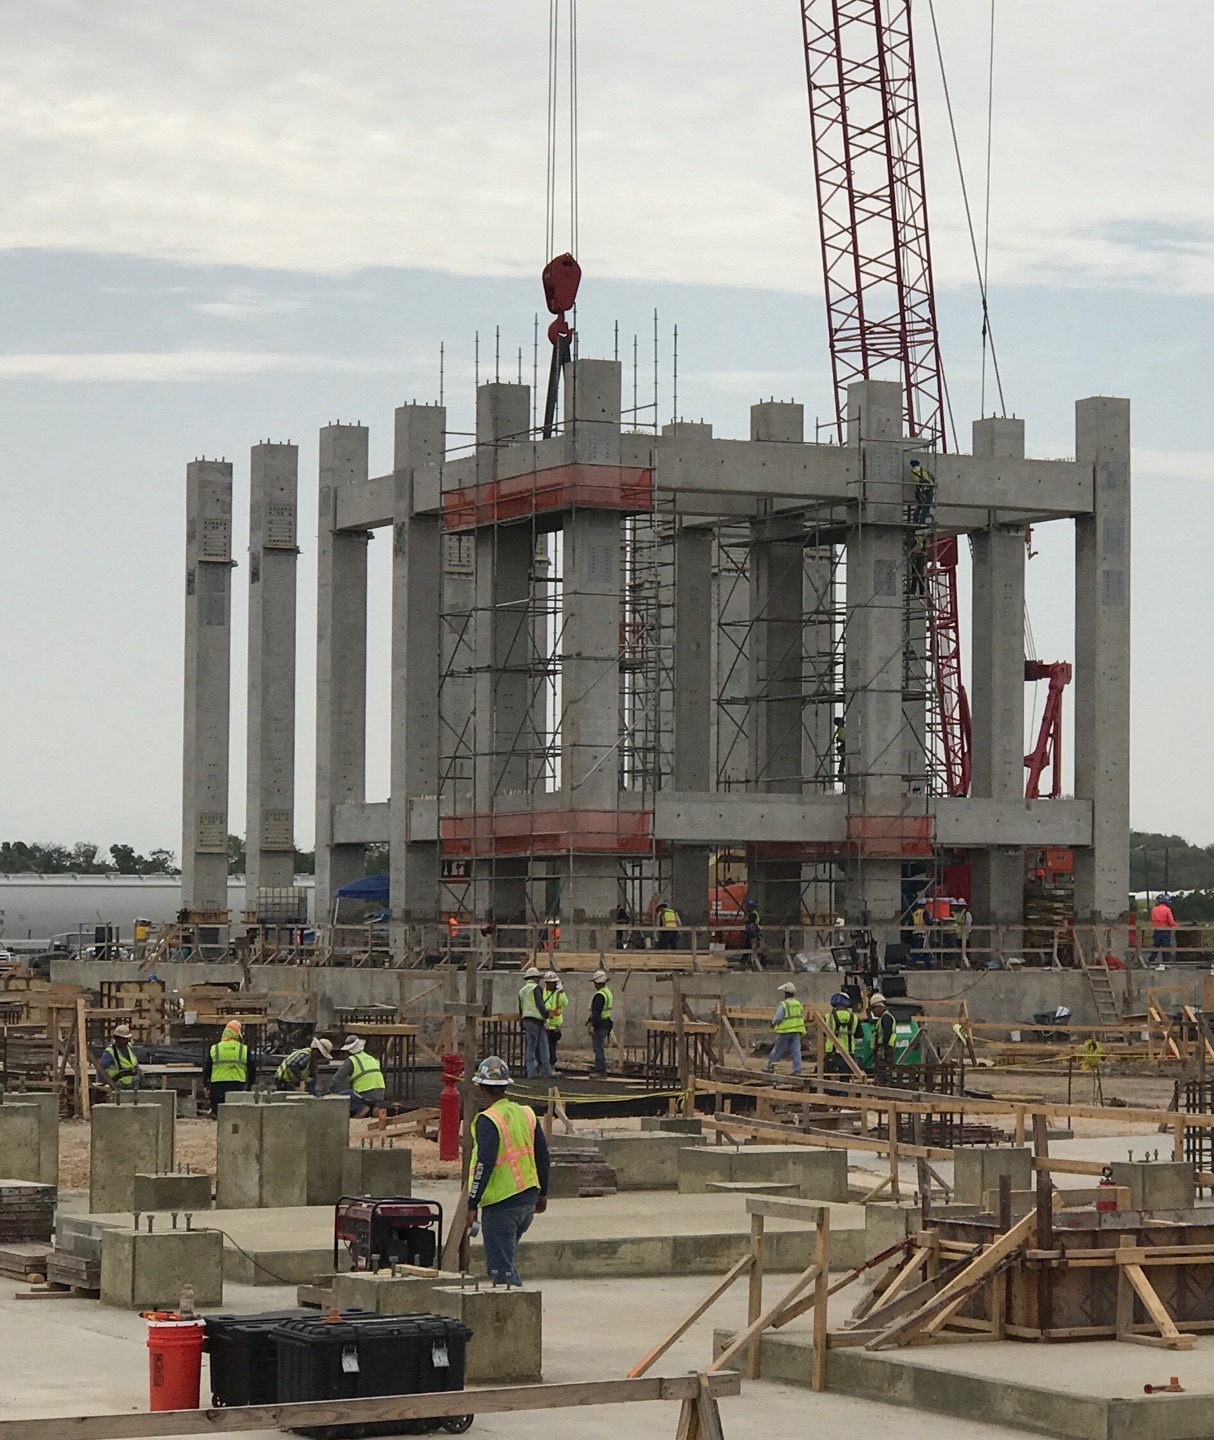 Tindall Corporation Petrochemical Industrial Precast Concrete Dow Chemical Company Freeport Texas